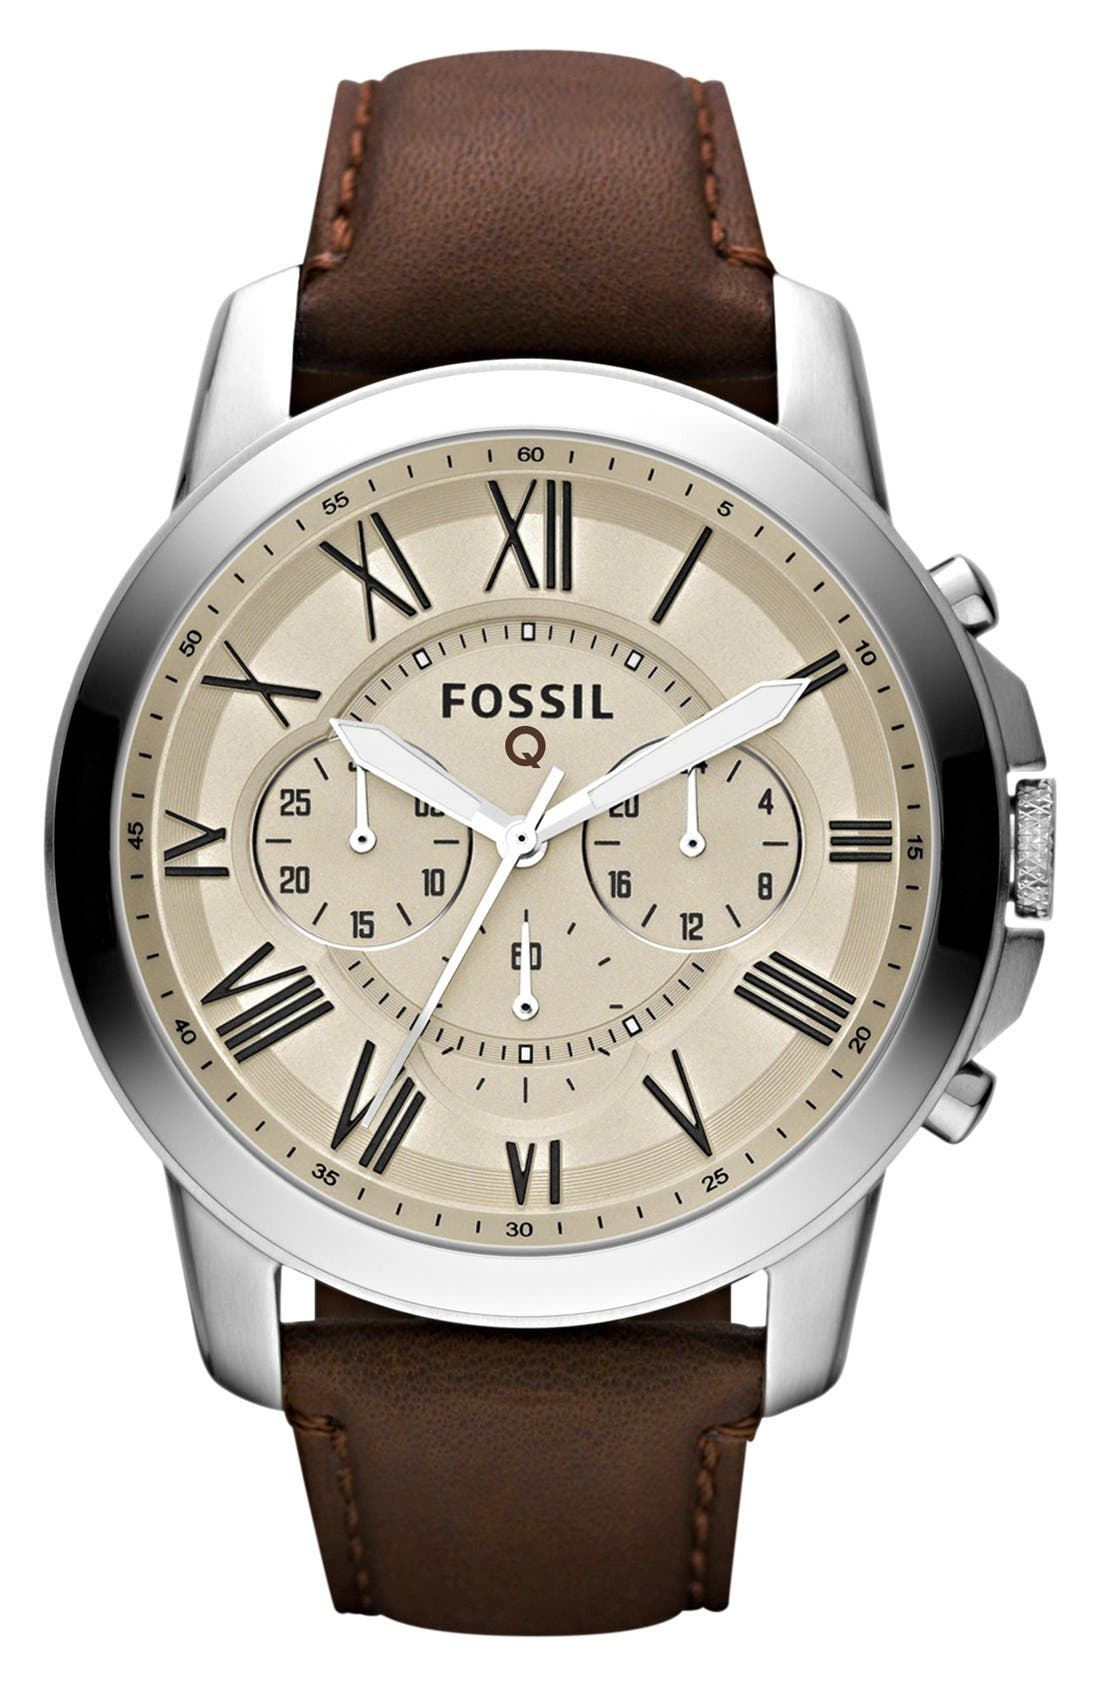 Fossil 'Fossil Q - Grant' Round Chronograph Leather Strap Smart Watch, 44mm,                             Main thumbnail 1, color,                             Brown/ Egg Shell